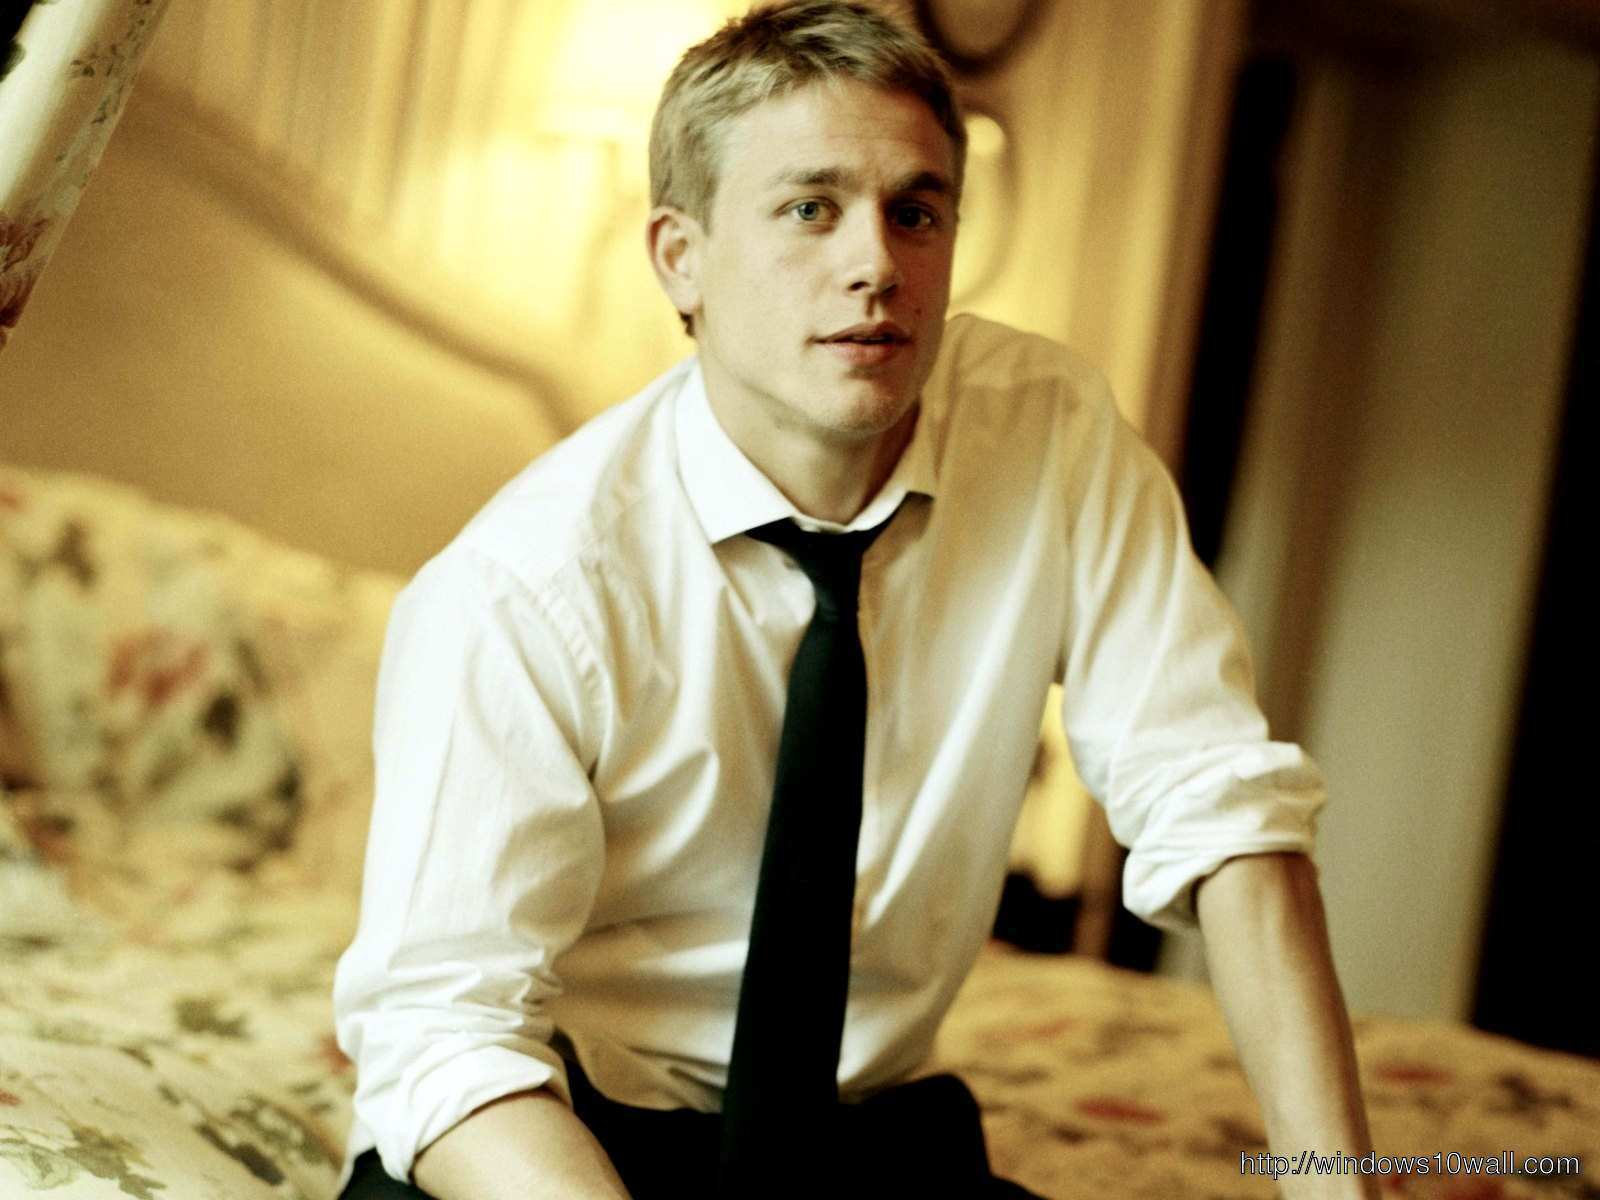 Charlie Hunnam Wearing Tie HD Background Wallpaper